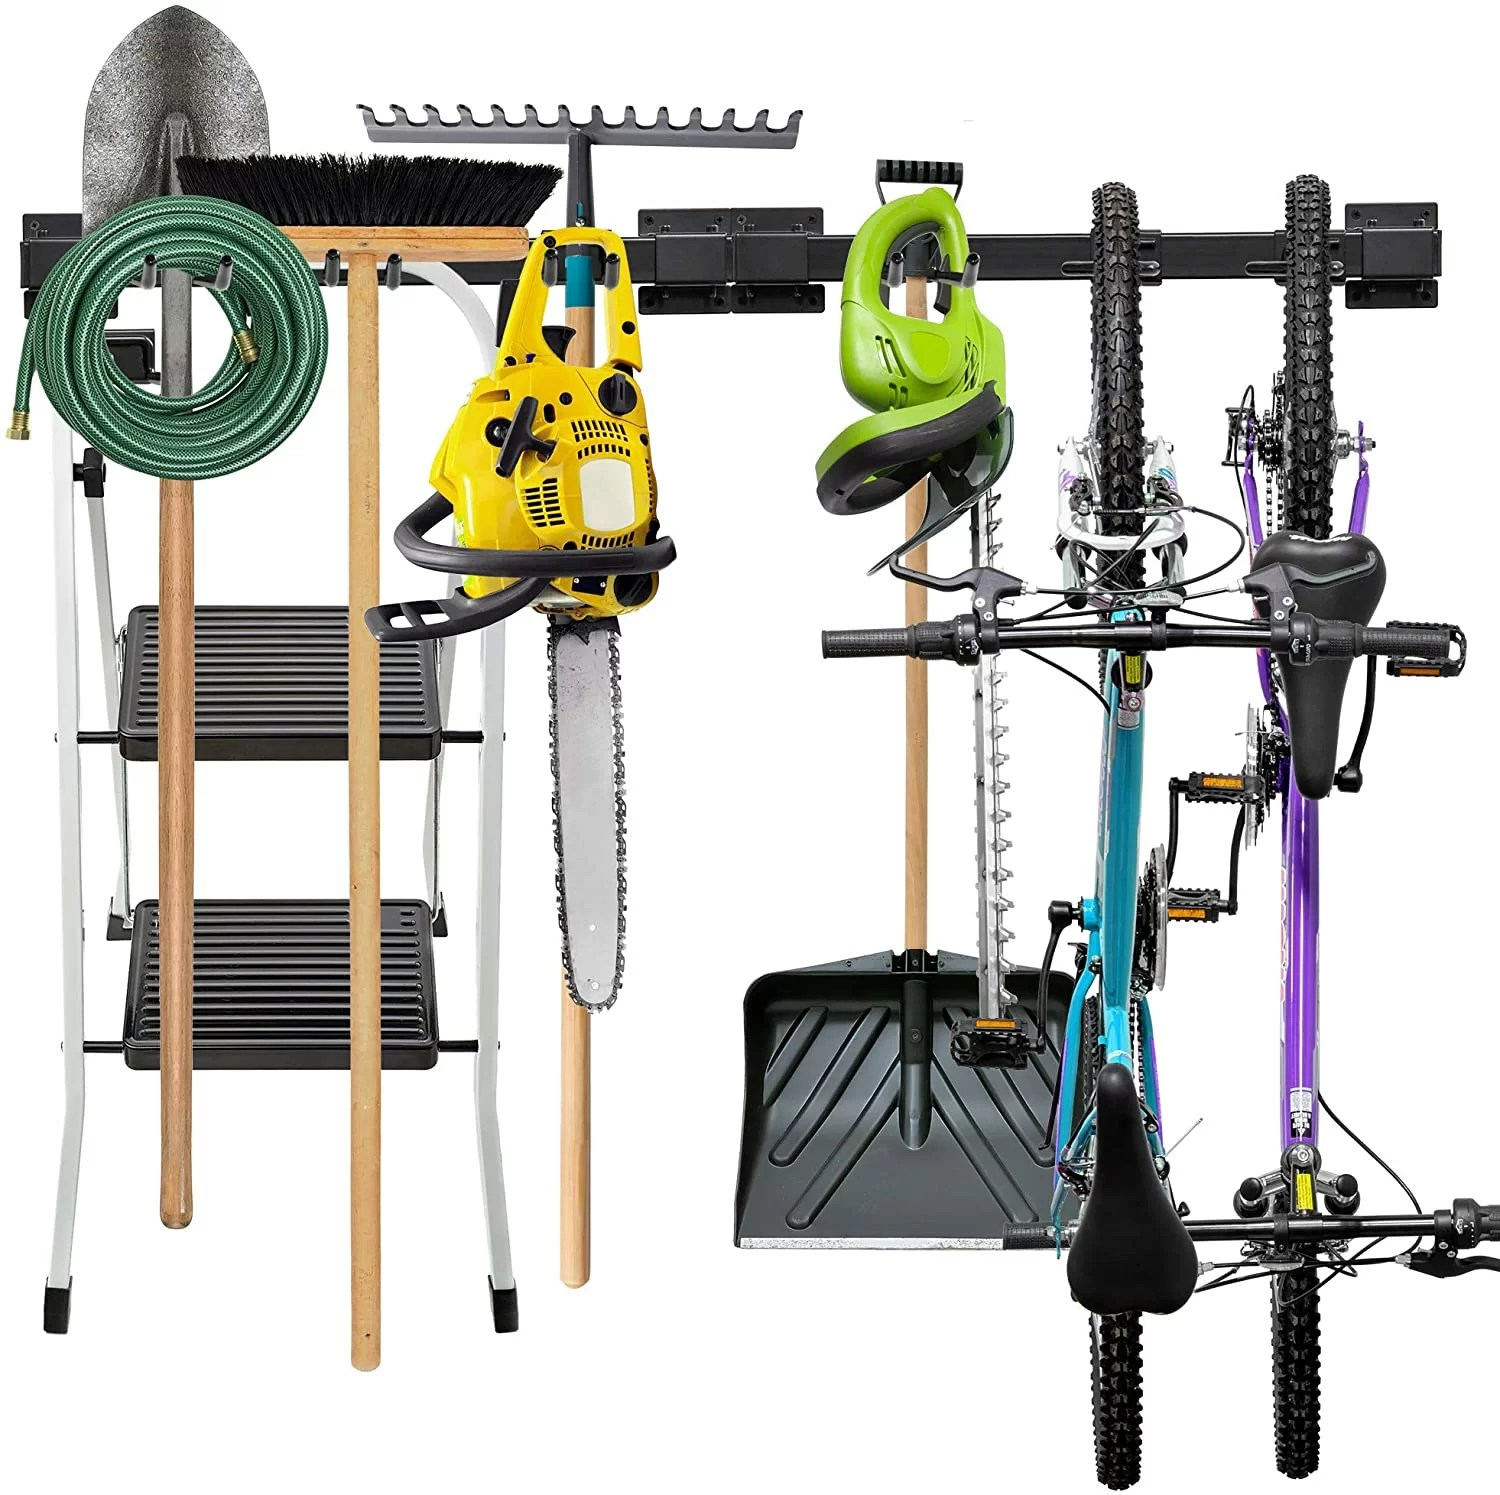 litzy wall mounted tool storage rack